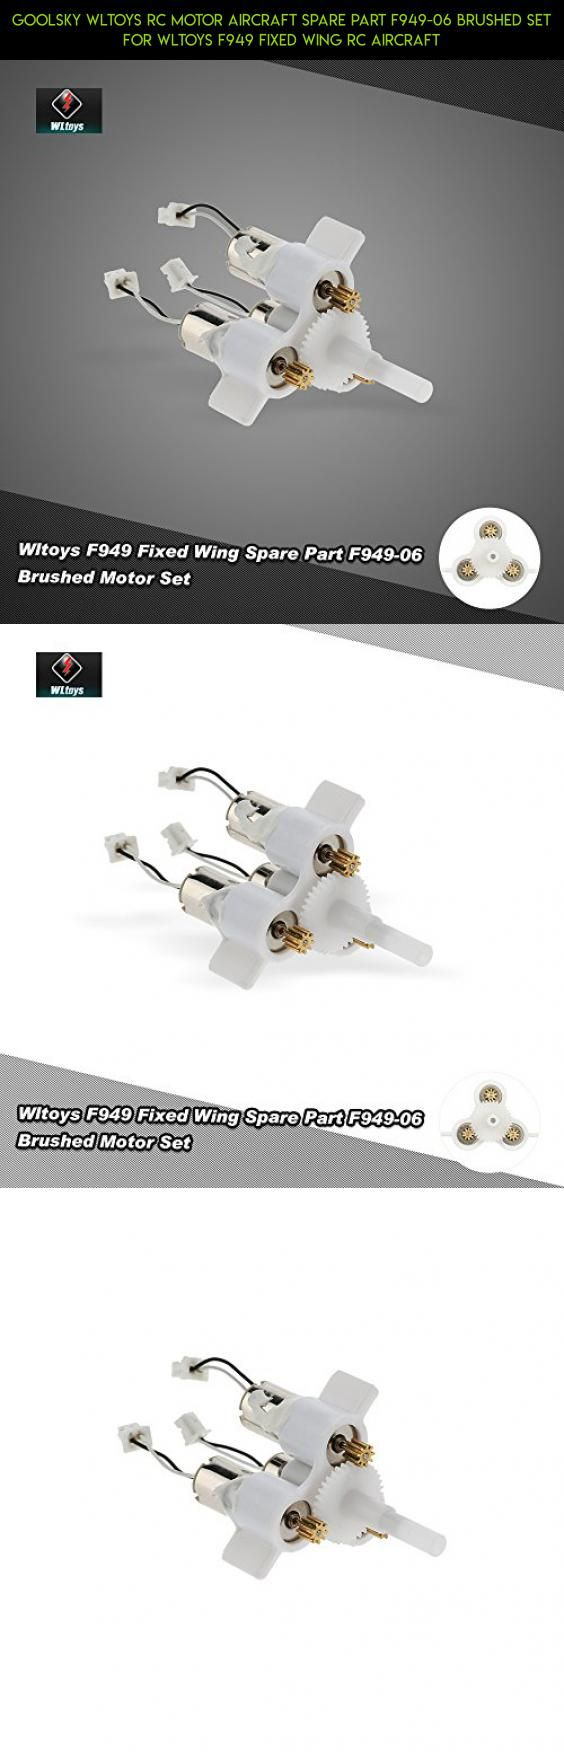 Goolsky Wltoys RC Motor Aircraft Spare Part F949-06 Brushed Set for Wltoys F949 Fixed Wing RC Aircraft #kit #parts #technology #shopping #racing #camera #fpv #plans #gadgets #f949 #drone #tech #products #wltoys